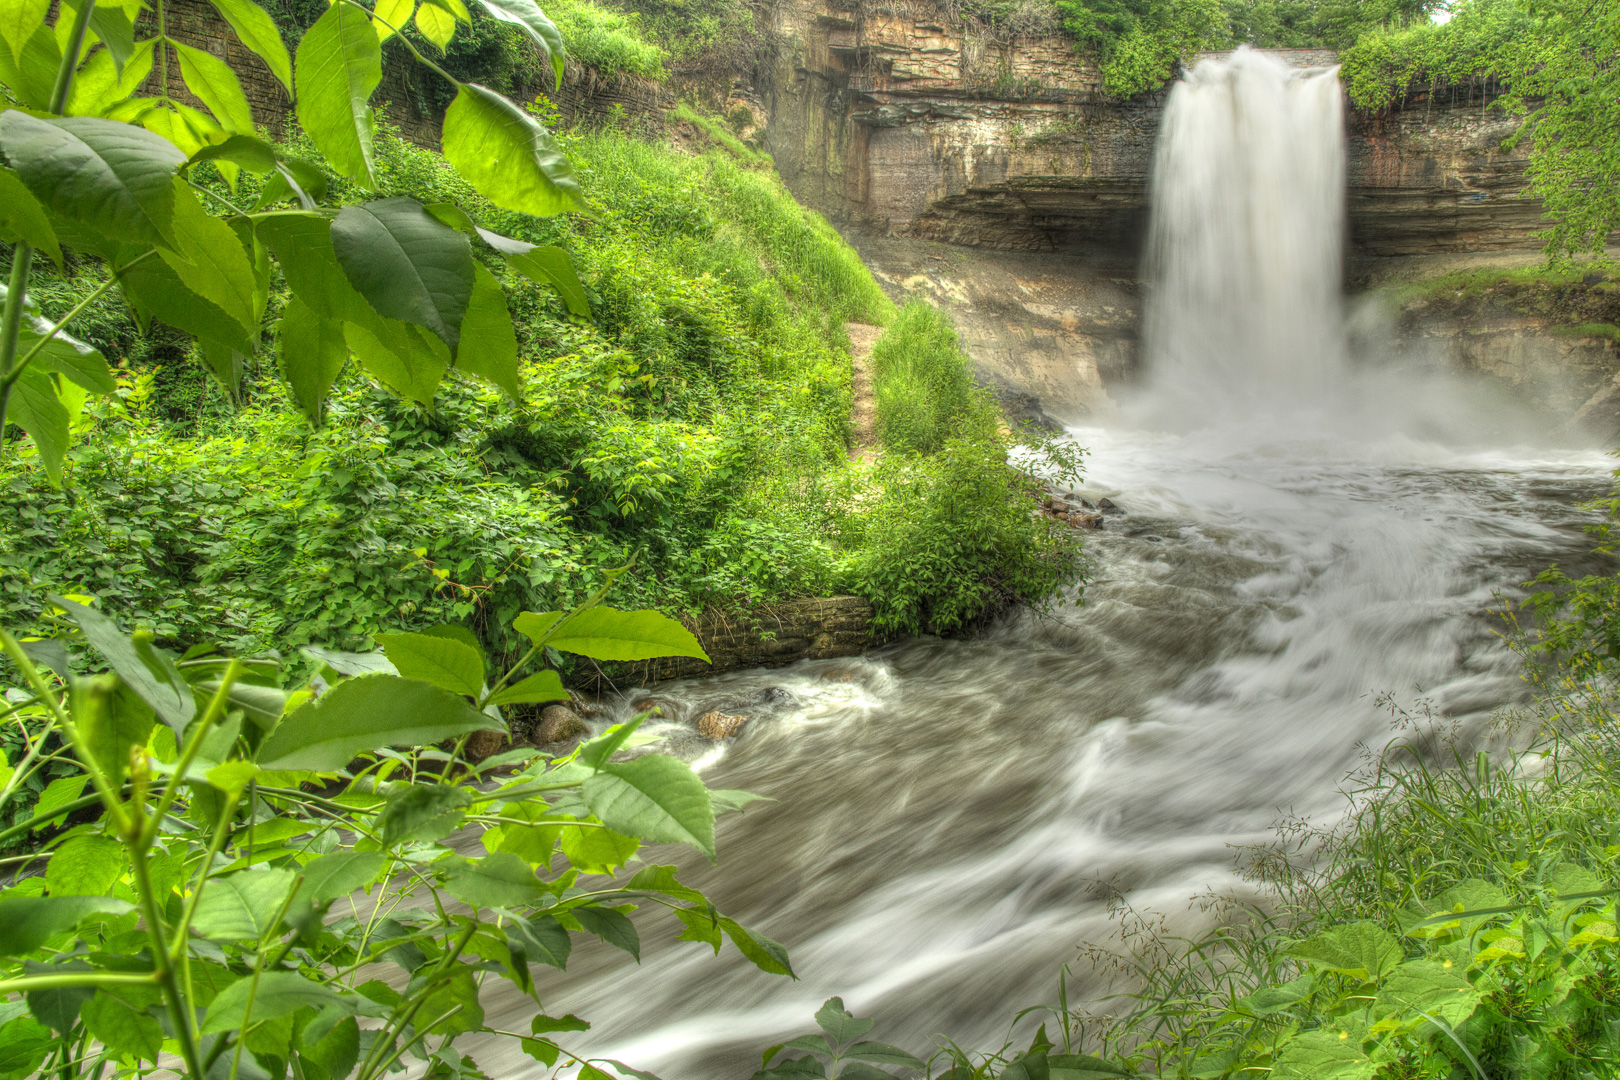 Minnehaha Falls - Color Print (Open) - Name Withheld Per Request